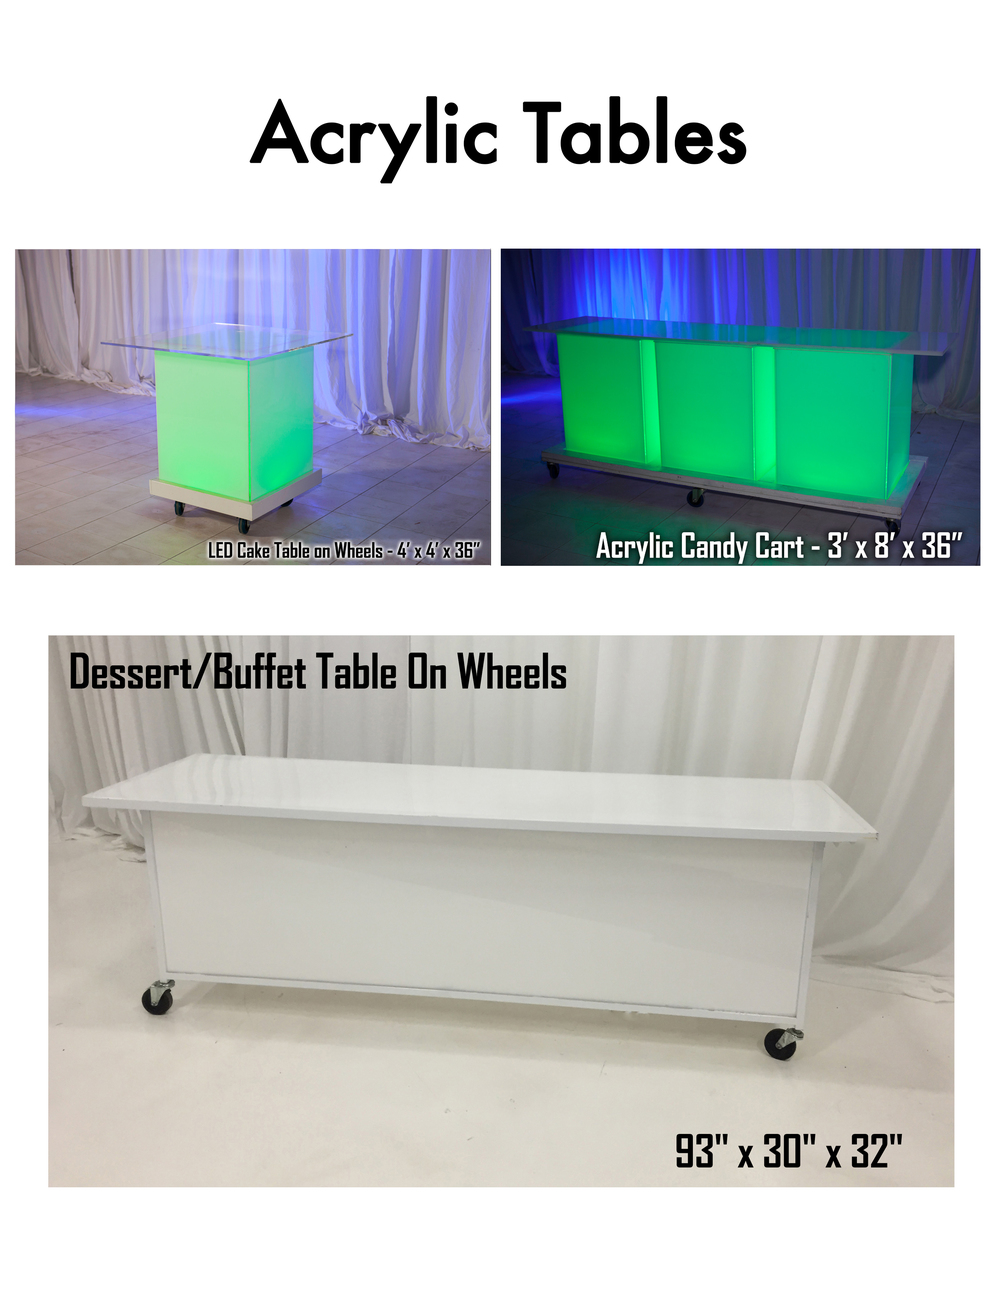 P26_Acrylic Tables.jpg